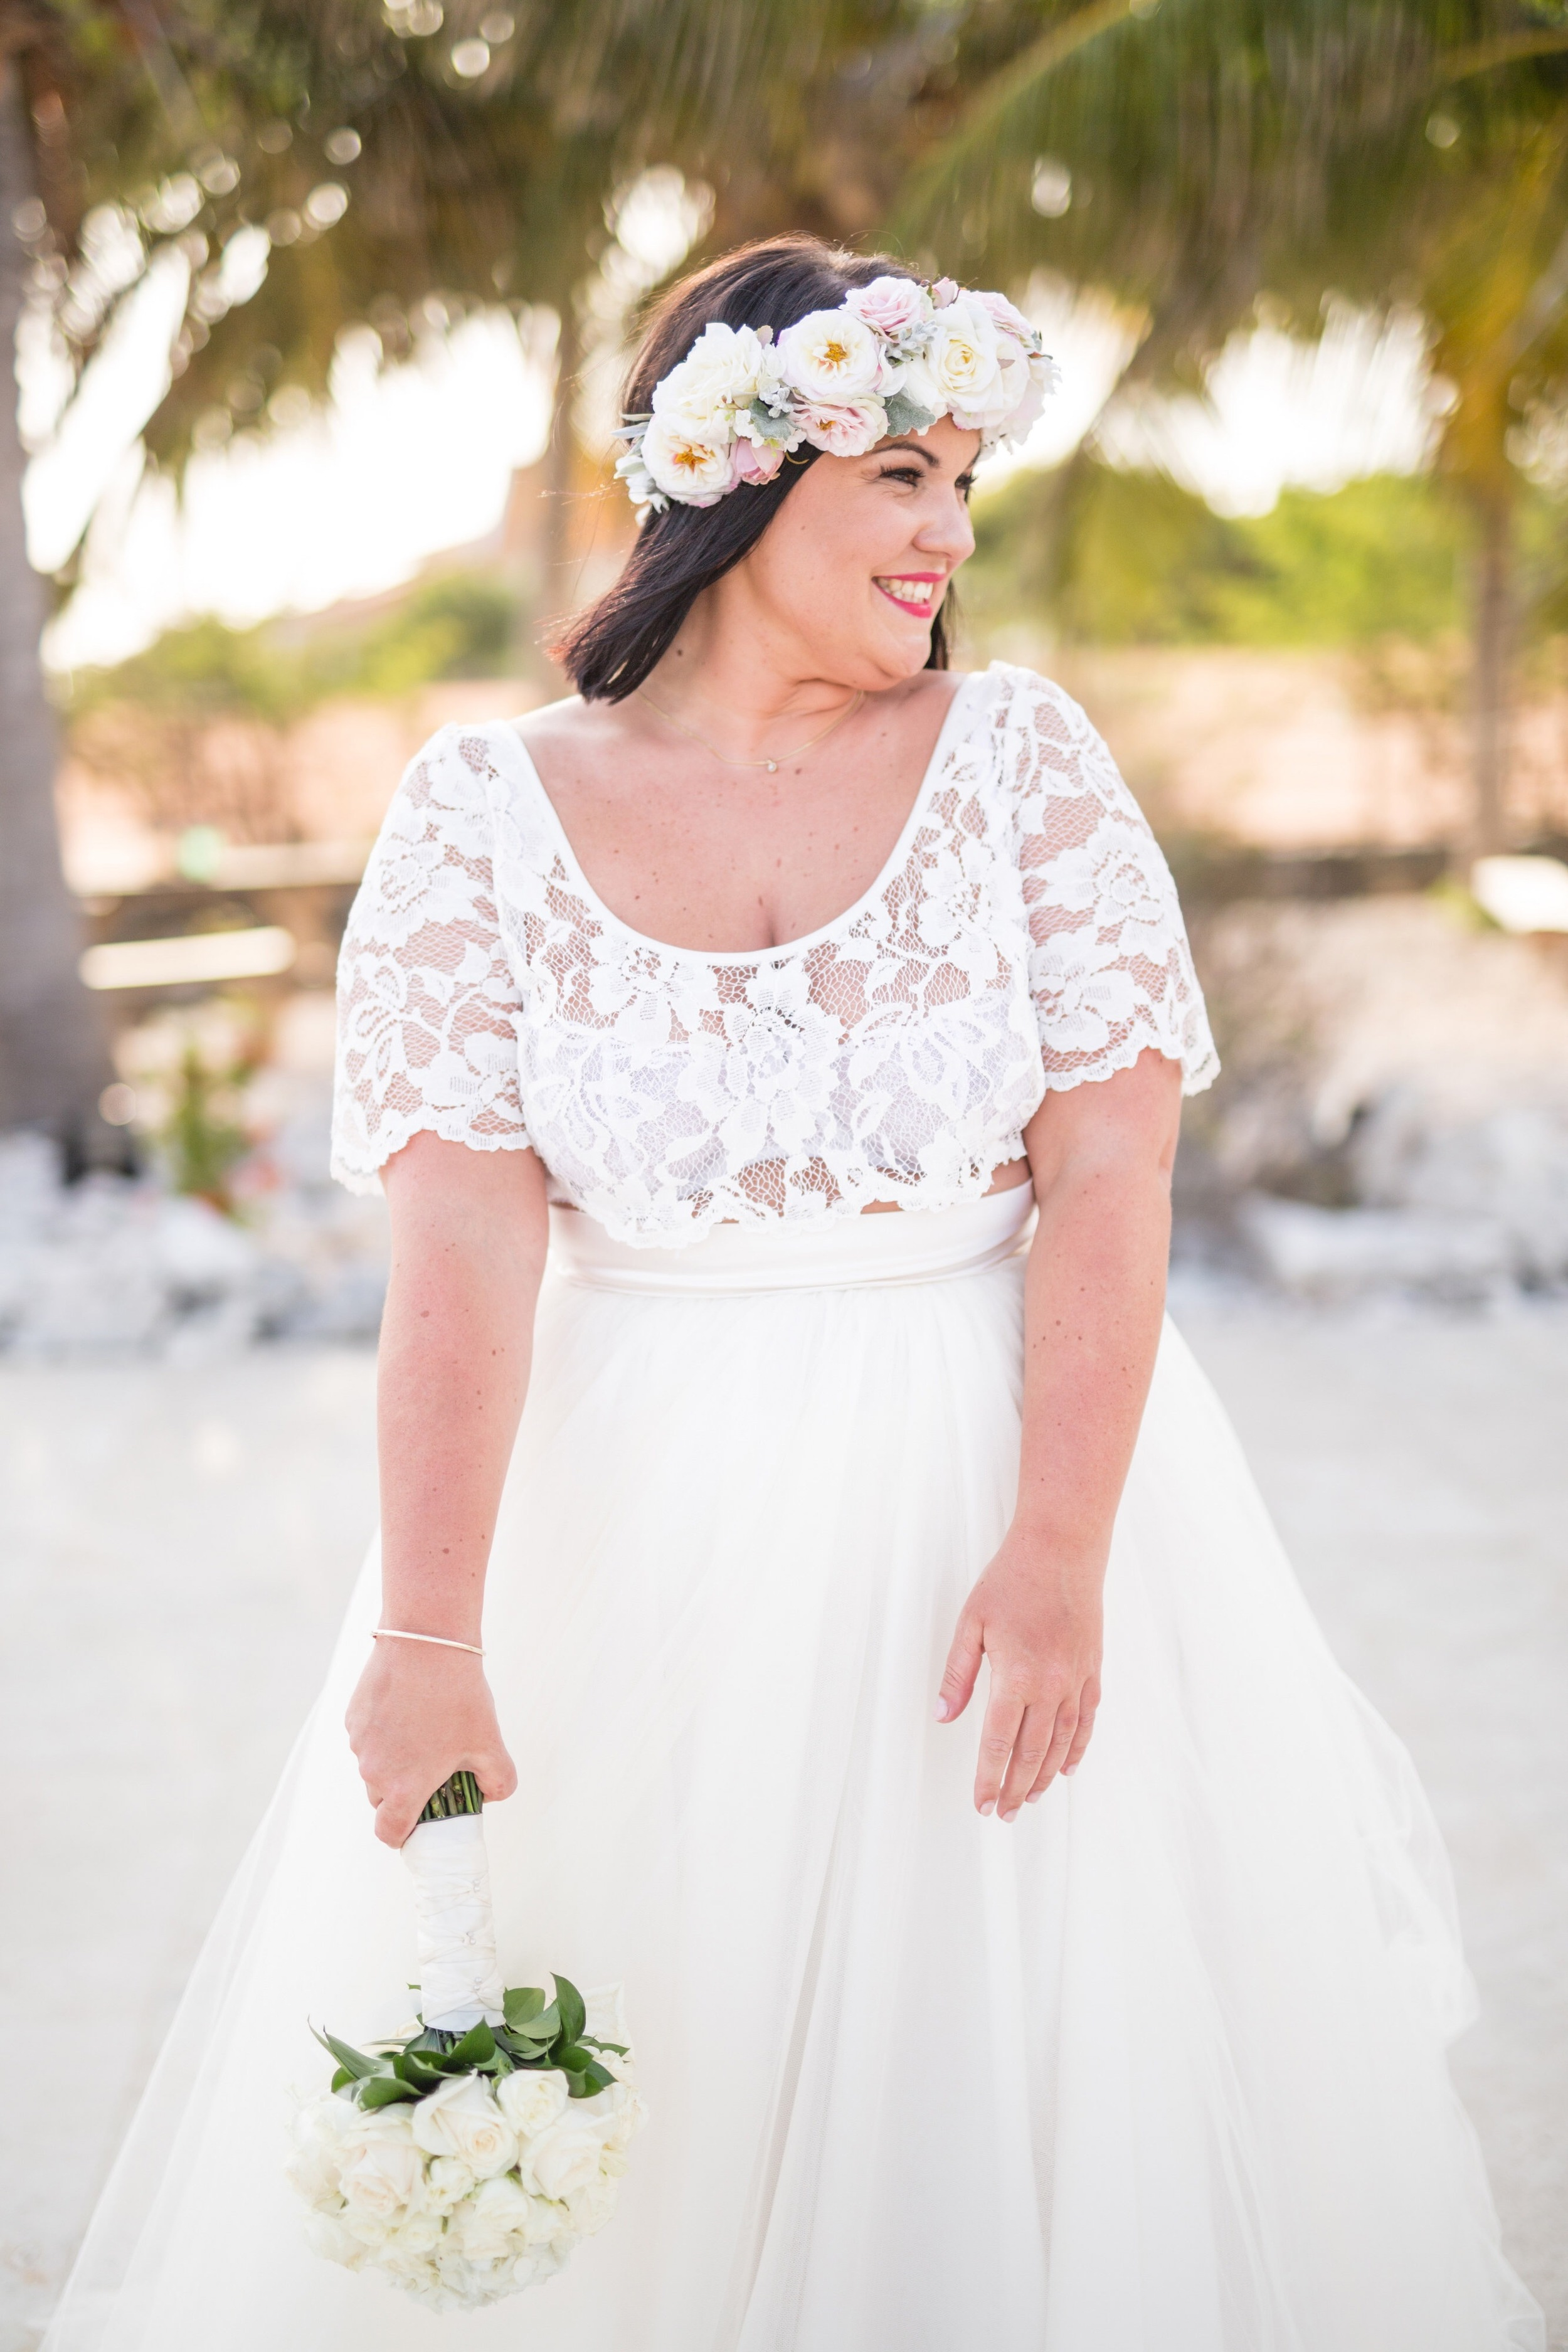 Beautiful bride Hannah wore a bespoke cropped Italian Lace tee and the Dita soft tulle skirt by Halfpenny London